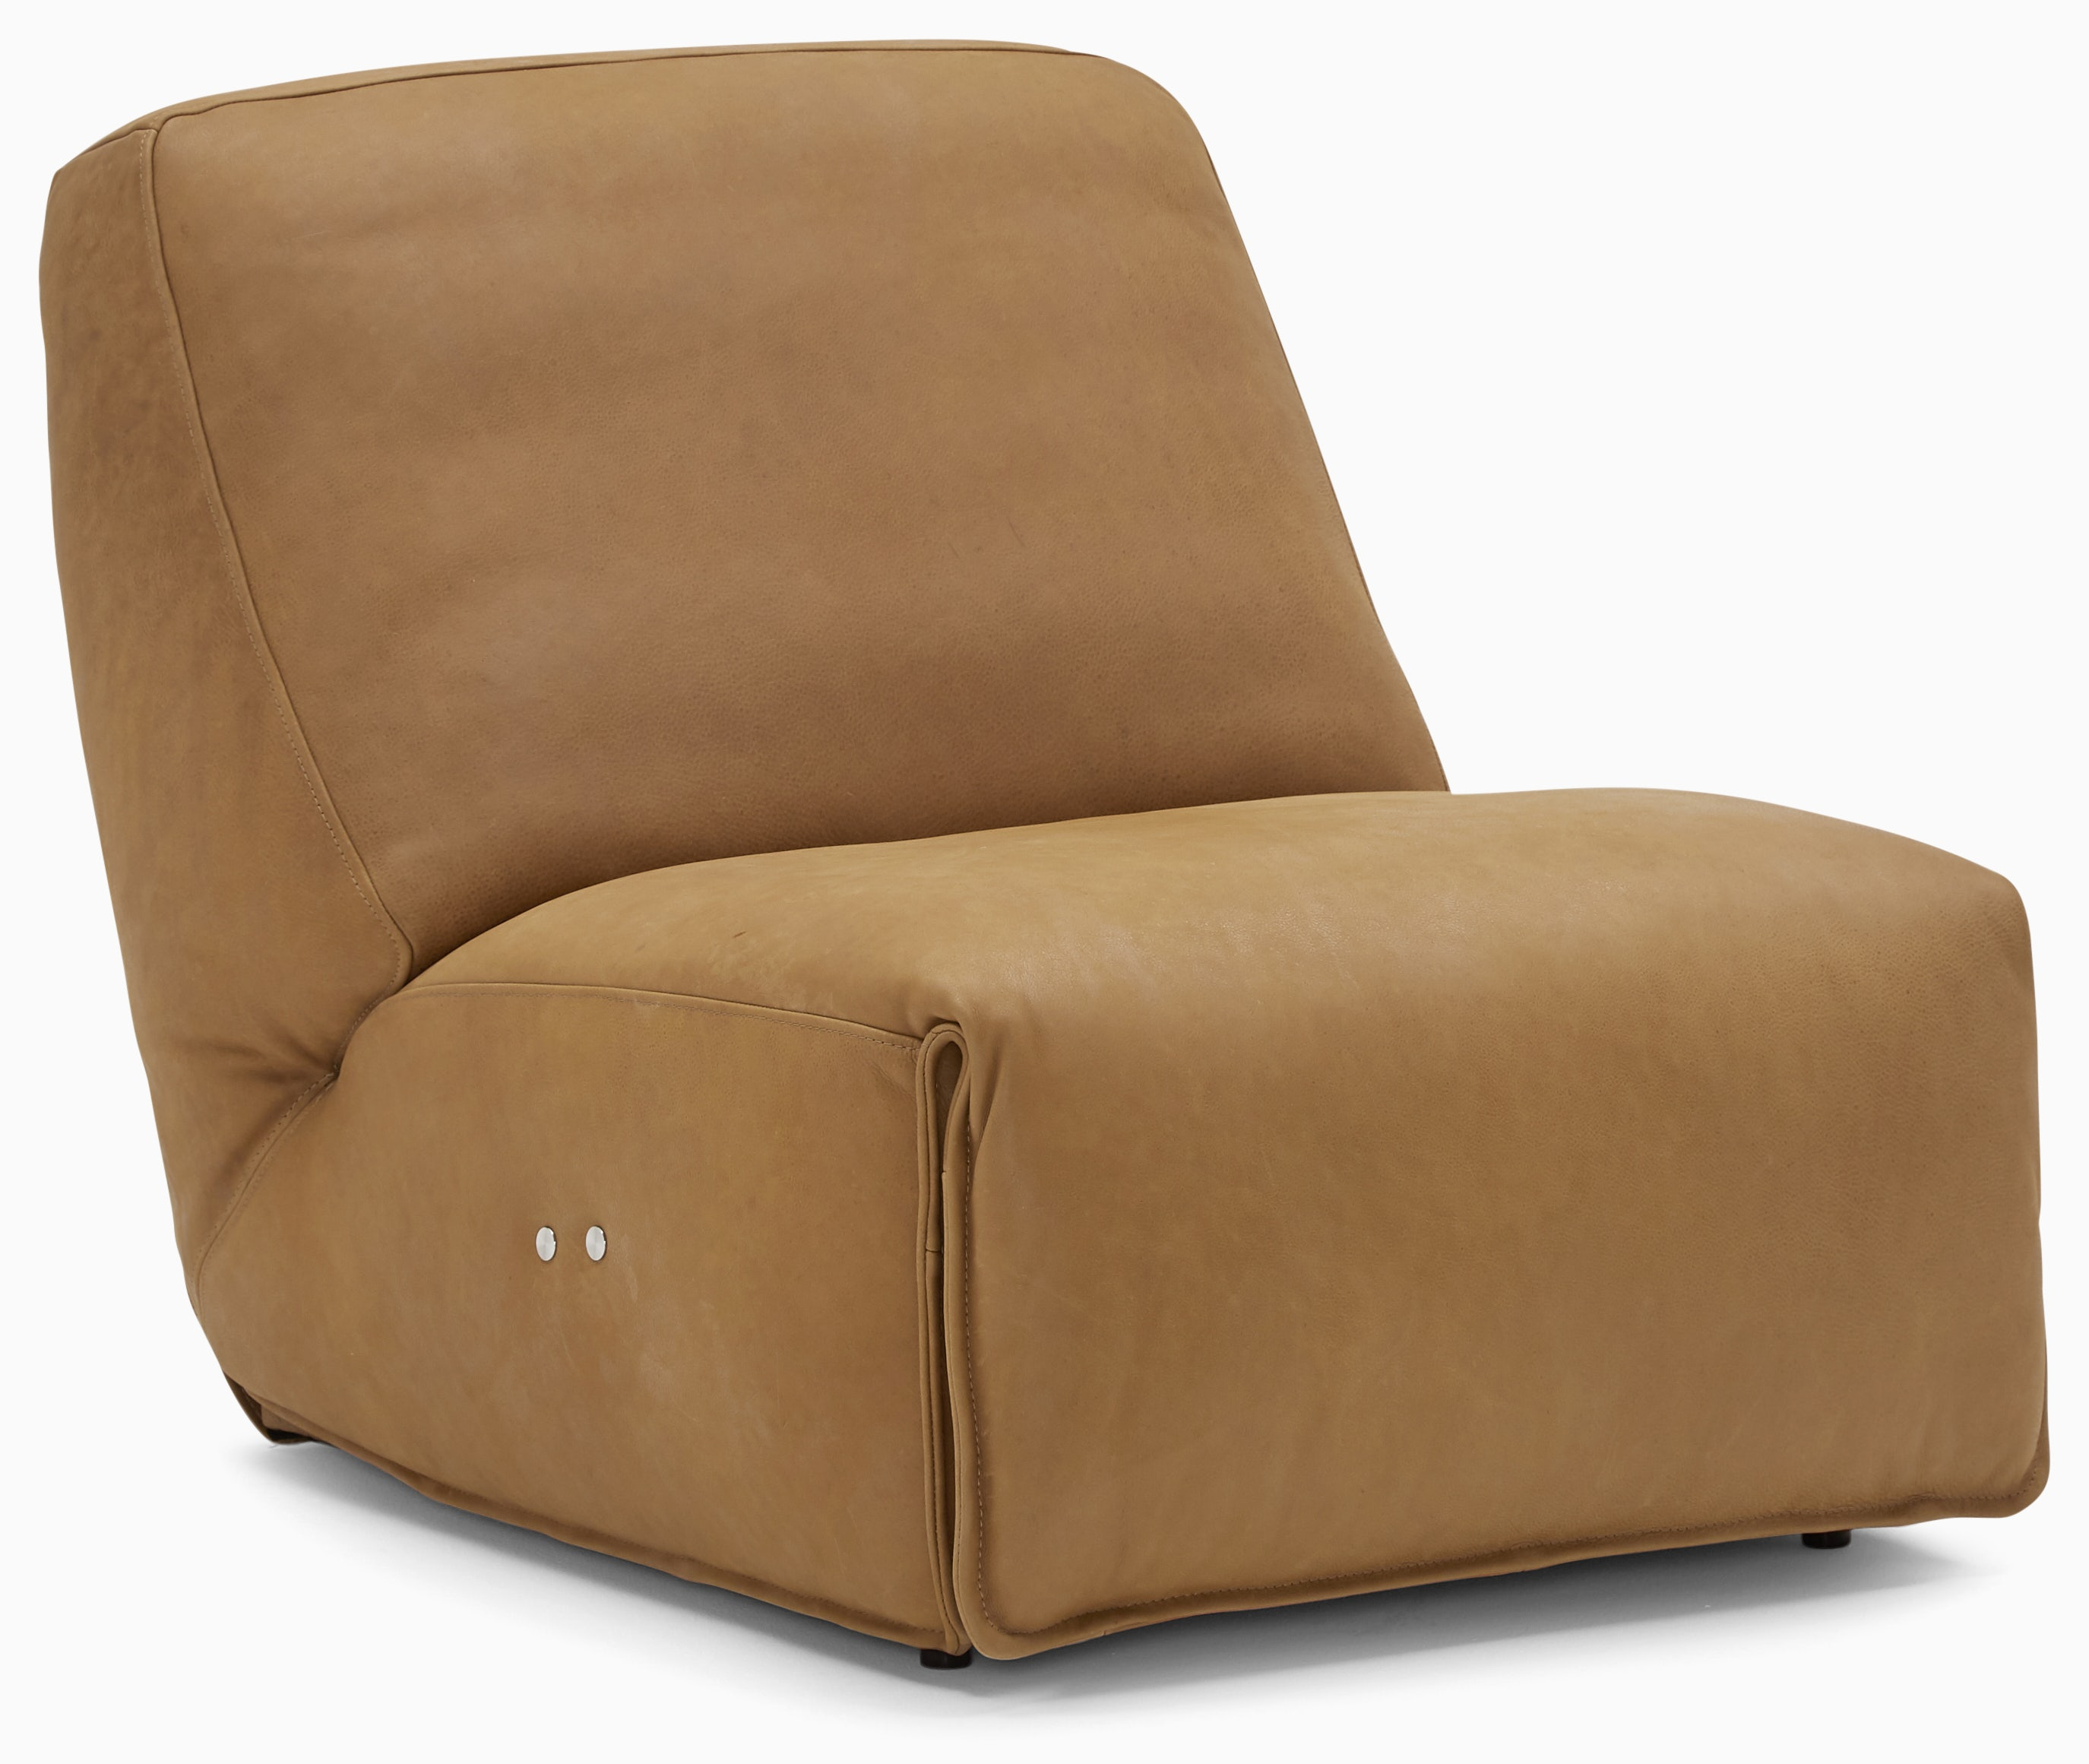 clover leather chair toledo camel